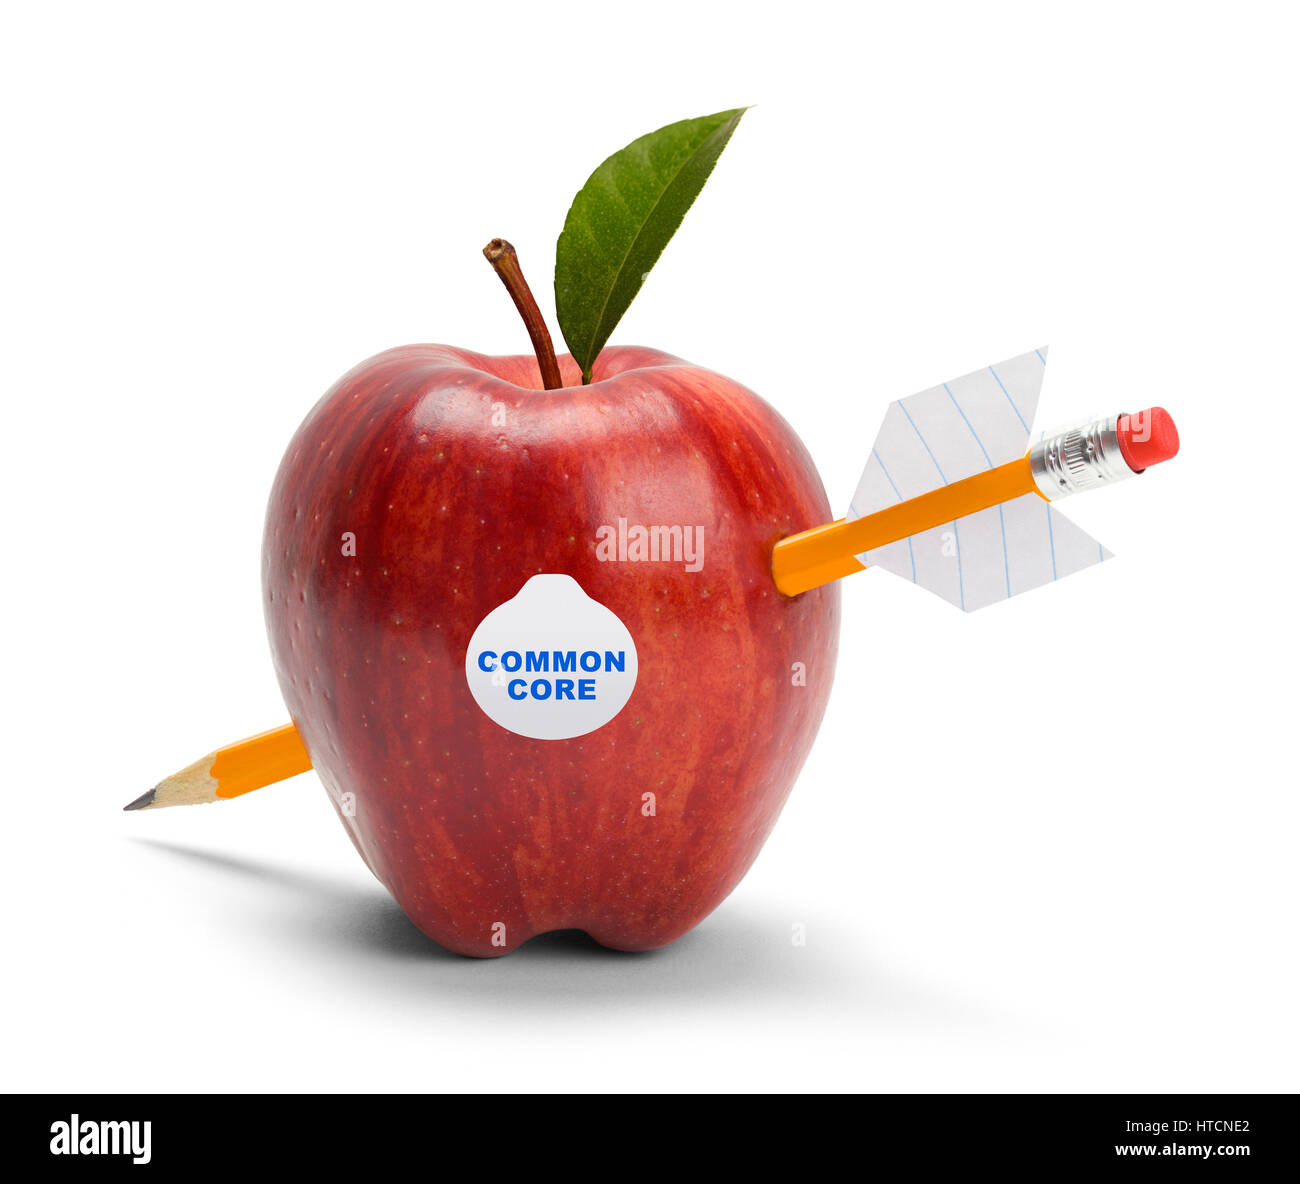 Apple with Common Core Sticker Shot by Pencil Arrow Isolated on White. - Stock Image